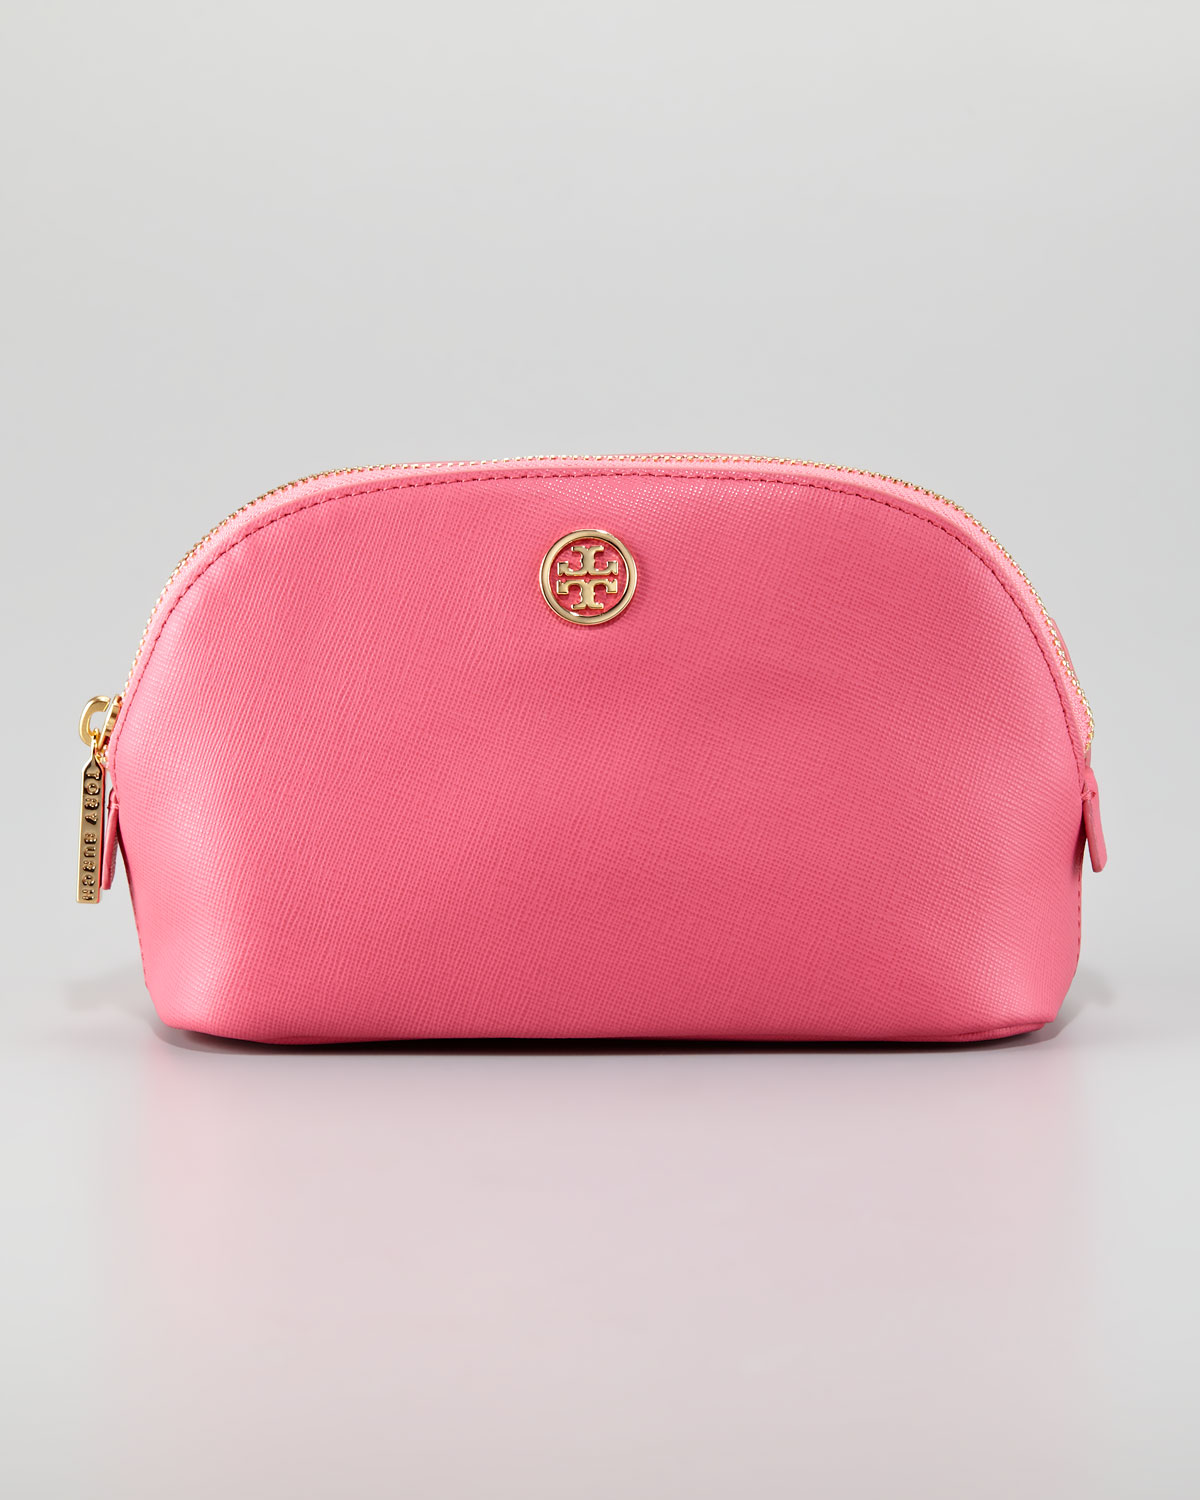 4001fd4f2b35 ... coupon code for lyst tory burch robinson makeup bag in pink 1ef5e cf646